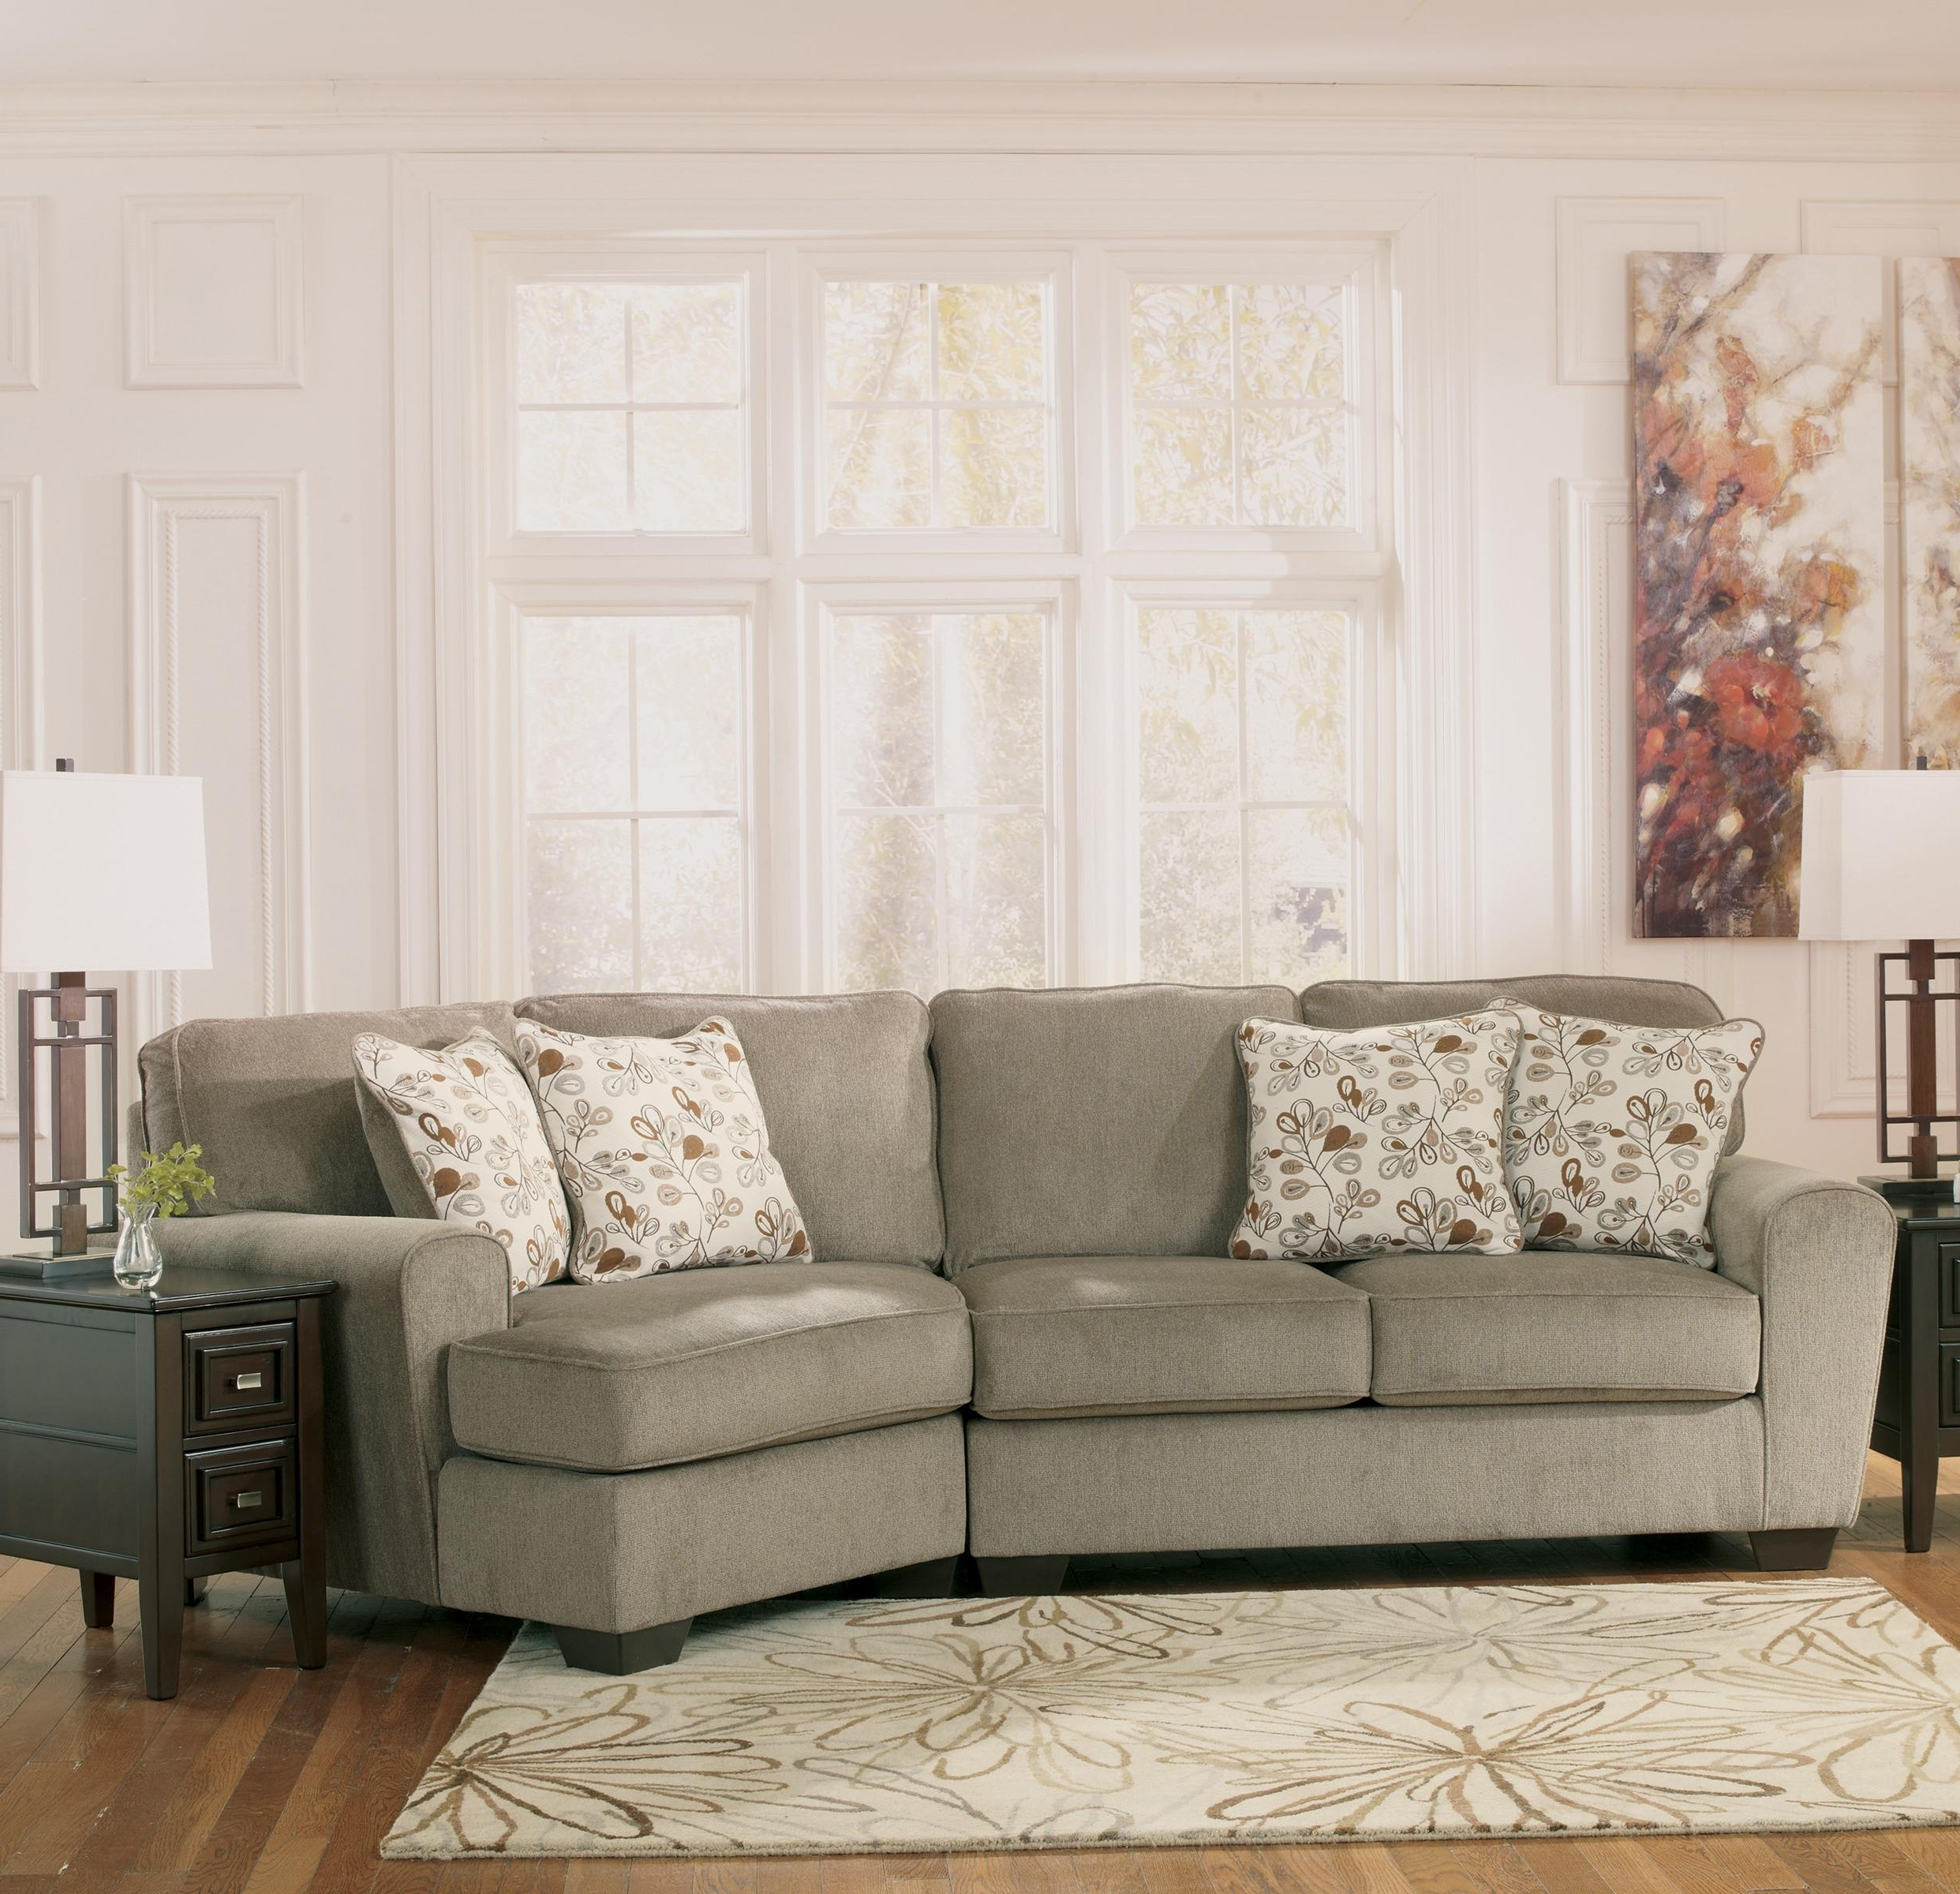 Ashley Furniture Patola Park – Patina 2 Piece Sectional With Right For Most Recently Released Cuddler Sectional Sofas (View 1 of 20)